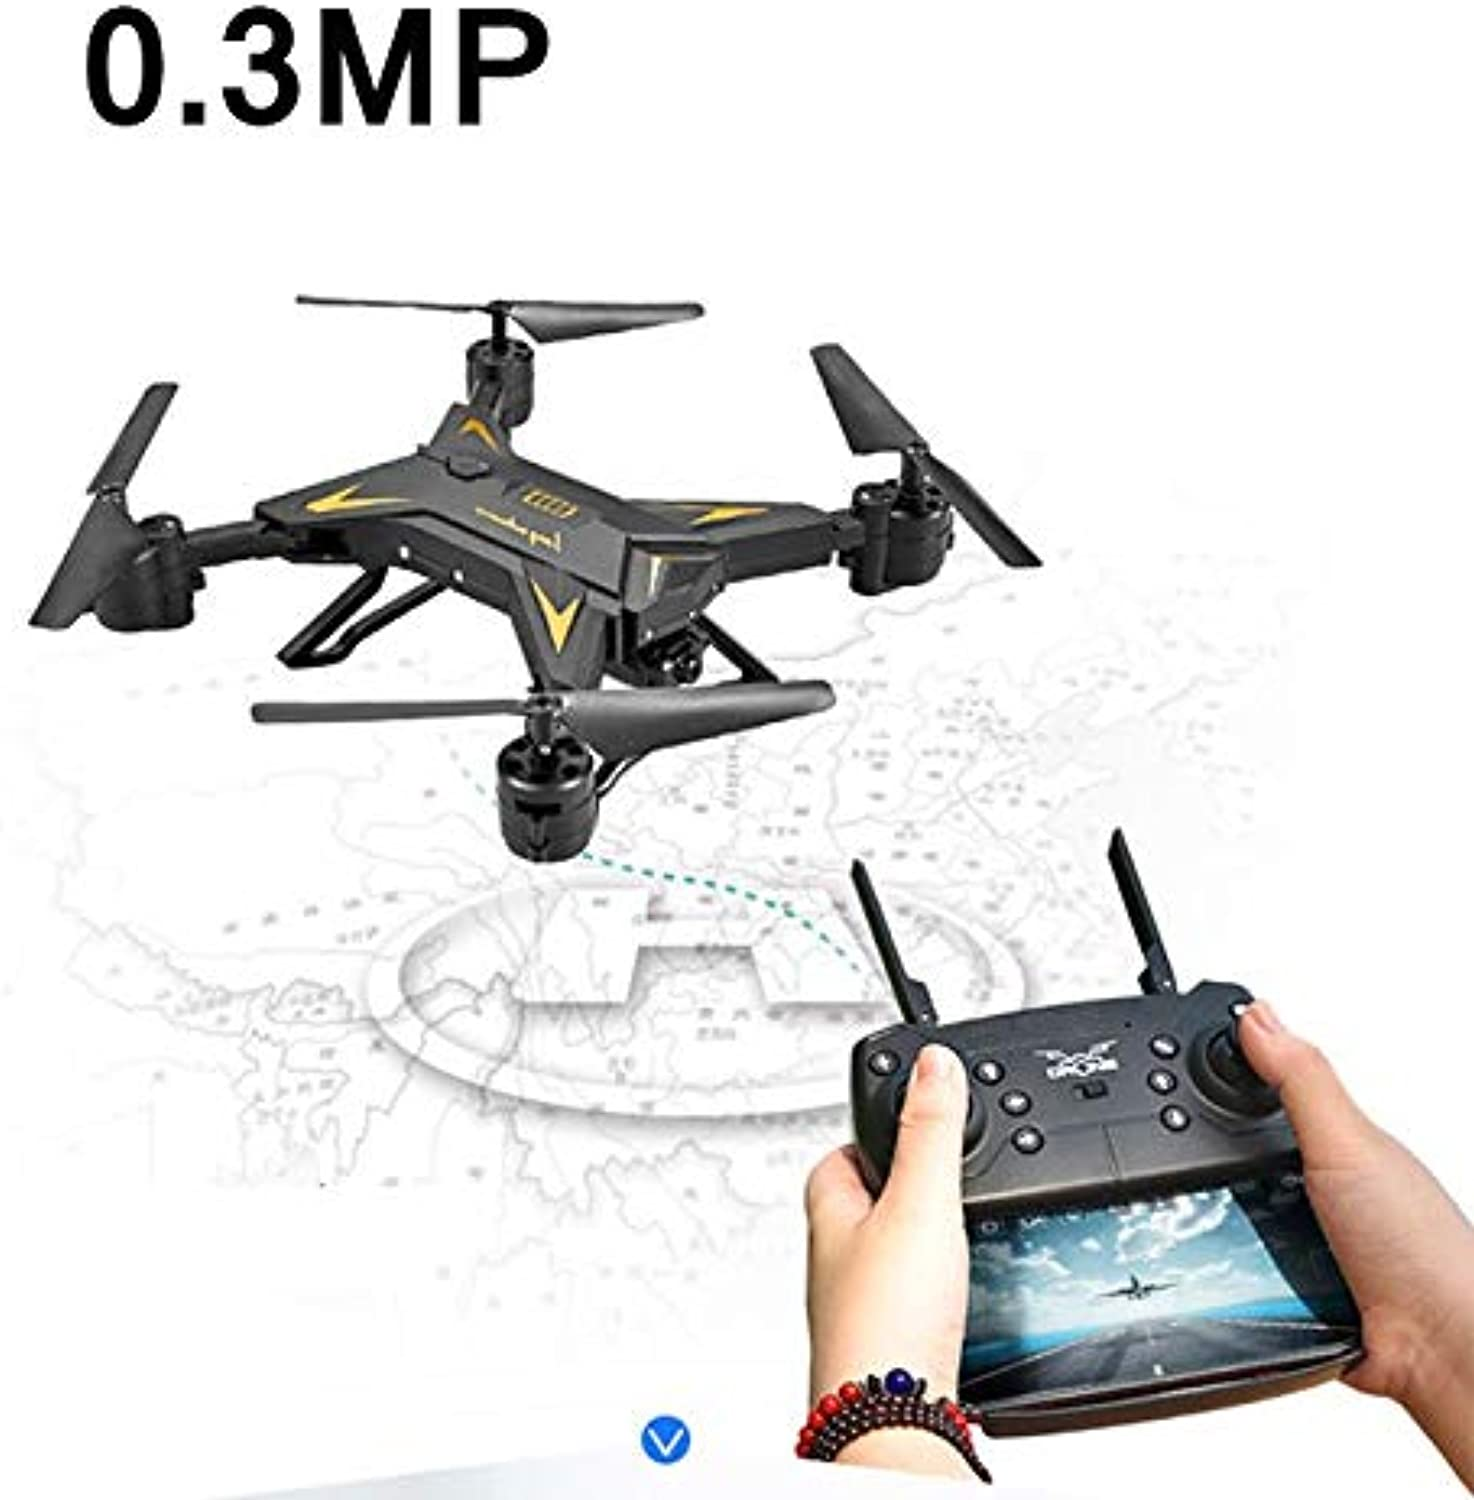 Generic RC Helicopter Drone with Camera HD 1080P WiFi FPV Selfie Drone Professional Foldable Quadcopter 20 Minutes Battery Life Black